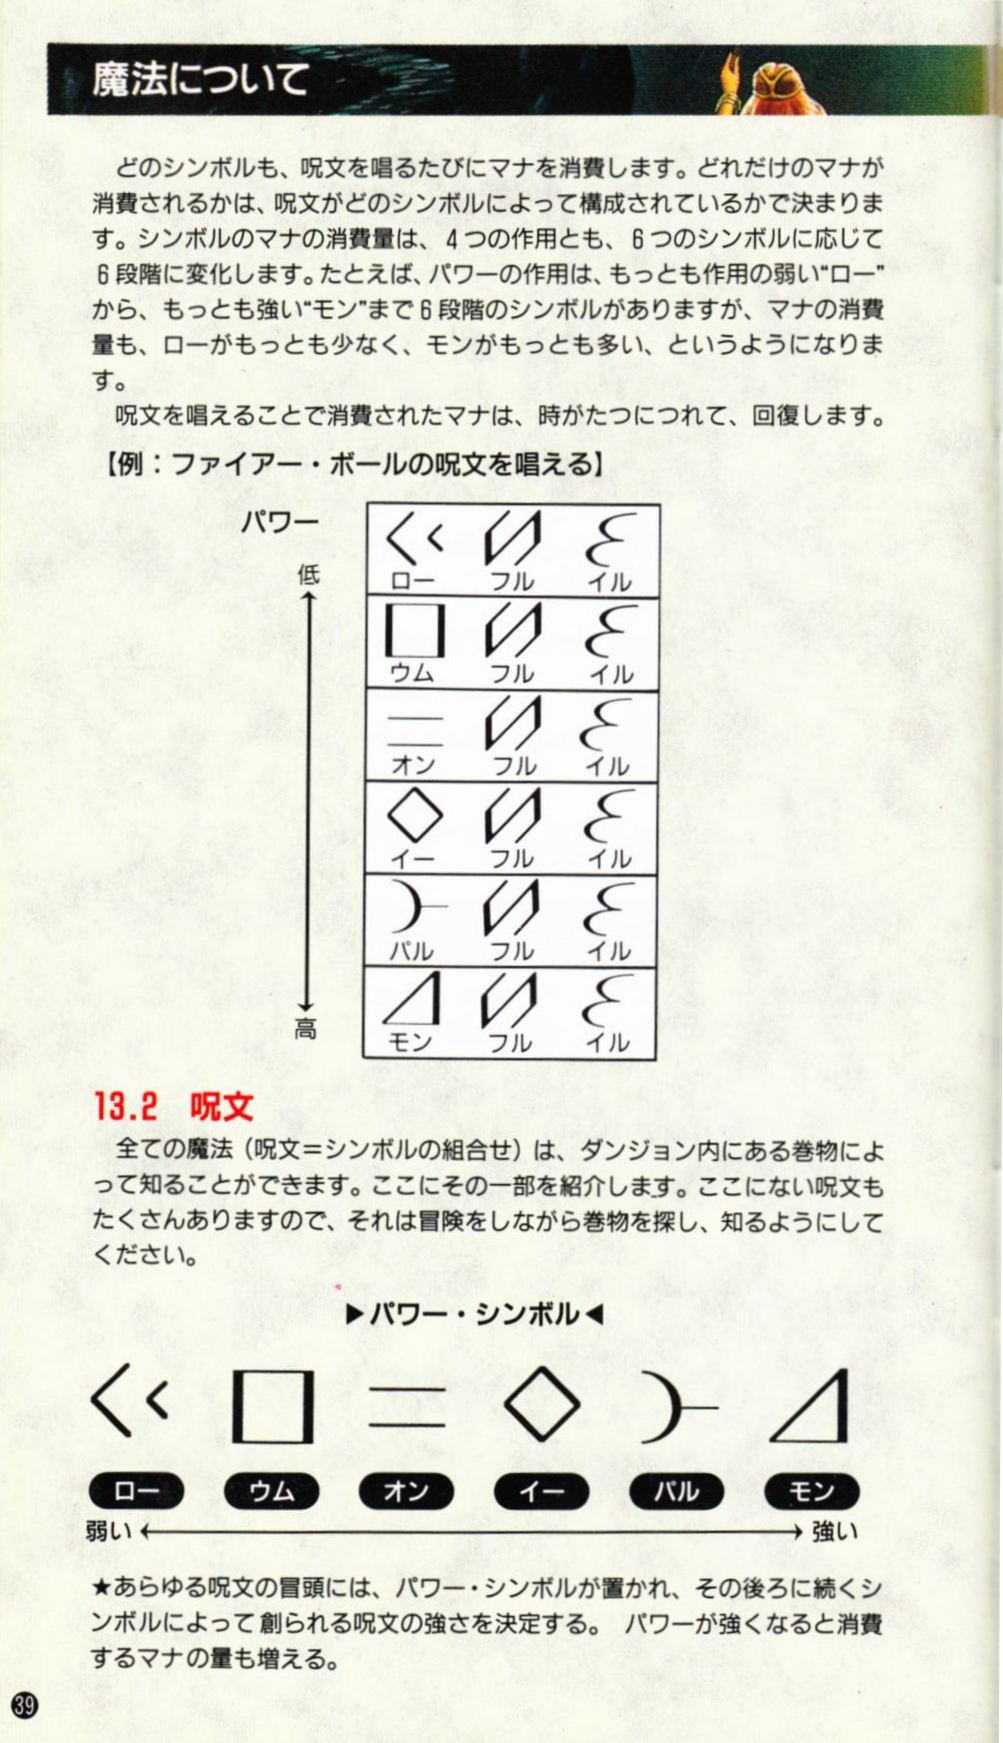 Game - Dungeon Master - JP - Super Famicom - Manual - Page 042 - Scan